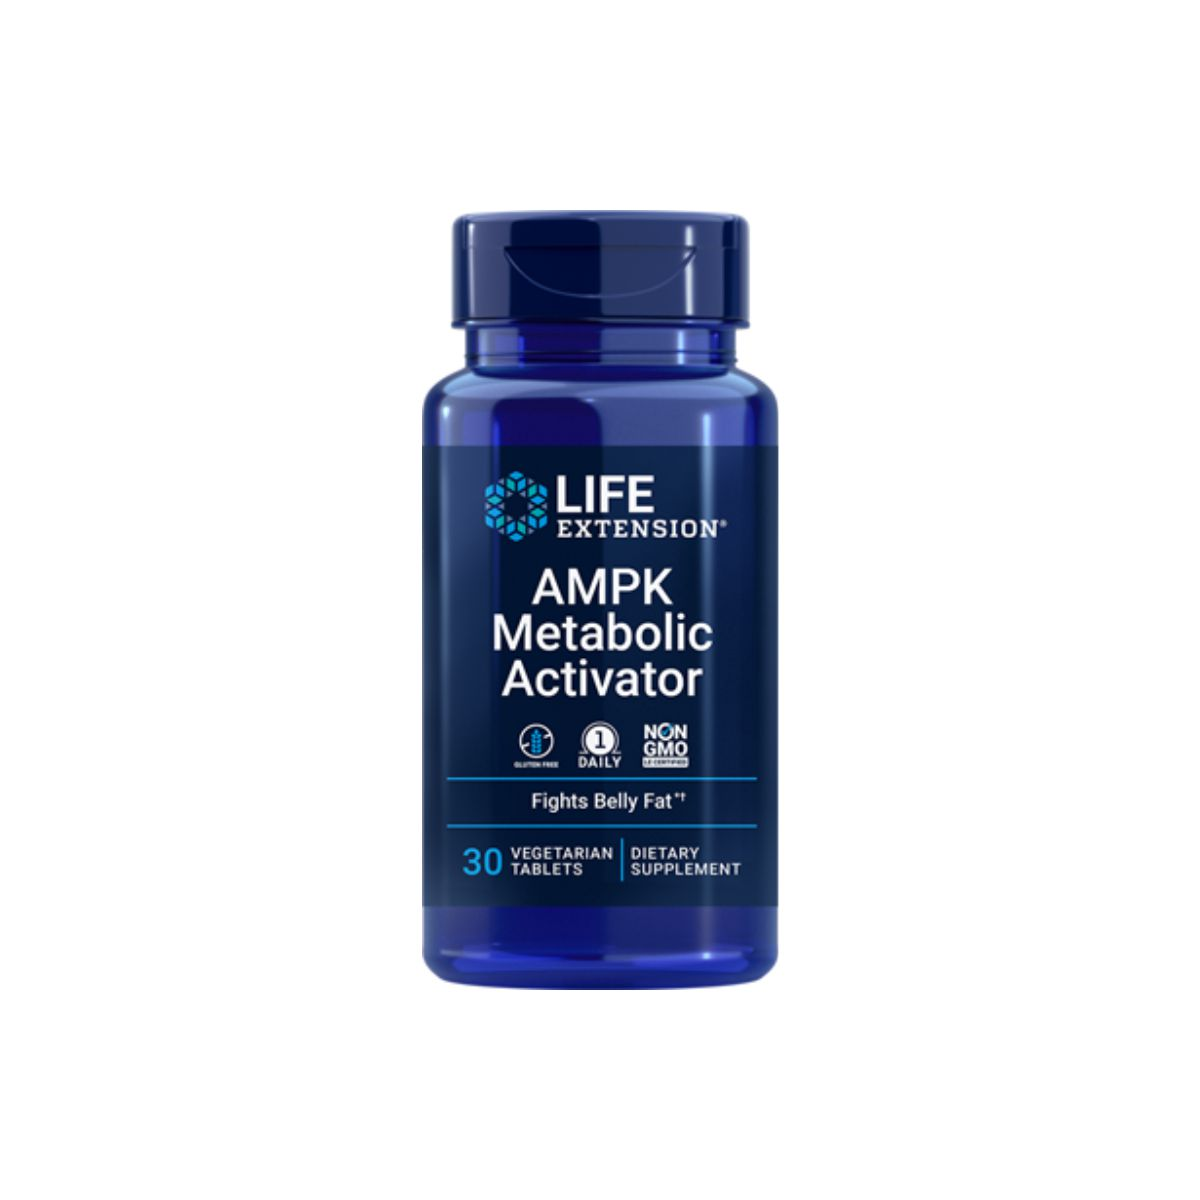 AMPK Matabolic Activator 30 Tabs - Life Extension